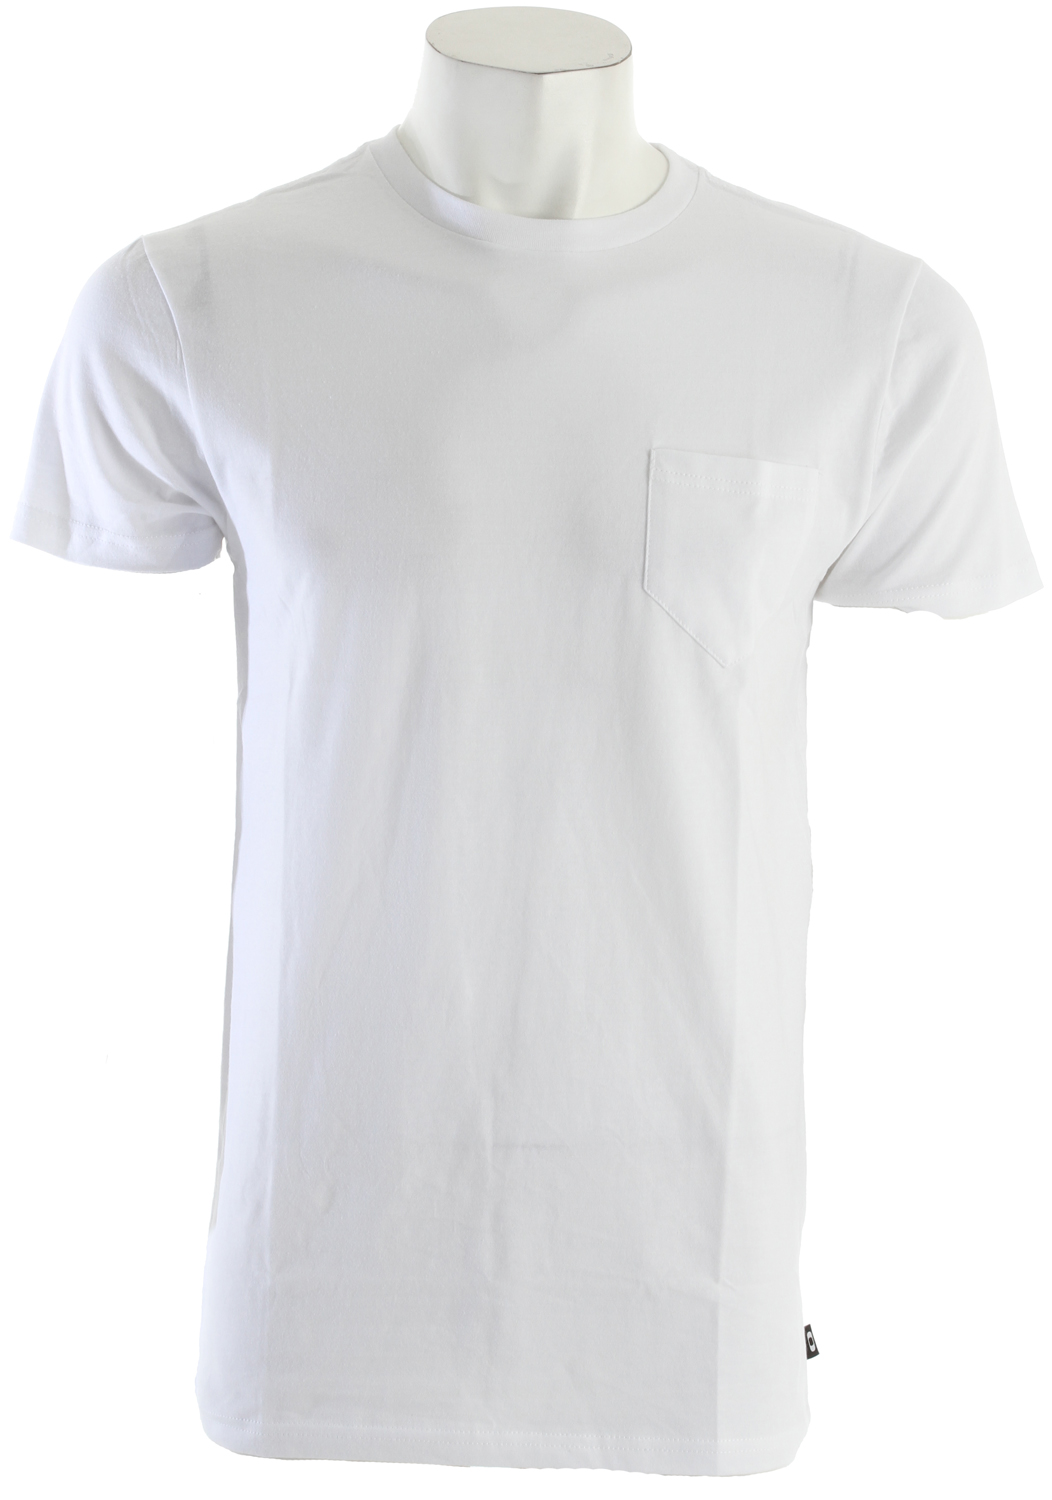 Key Features of the Oakley Pocket T-Shirt: Basic Tee Chest Pocket Side seam flag 100% Cotton Hybrid fit - $11.95